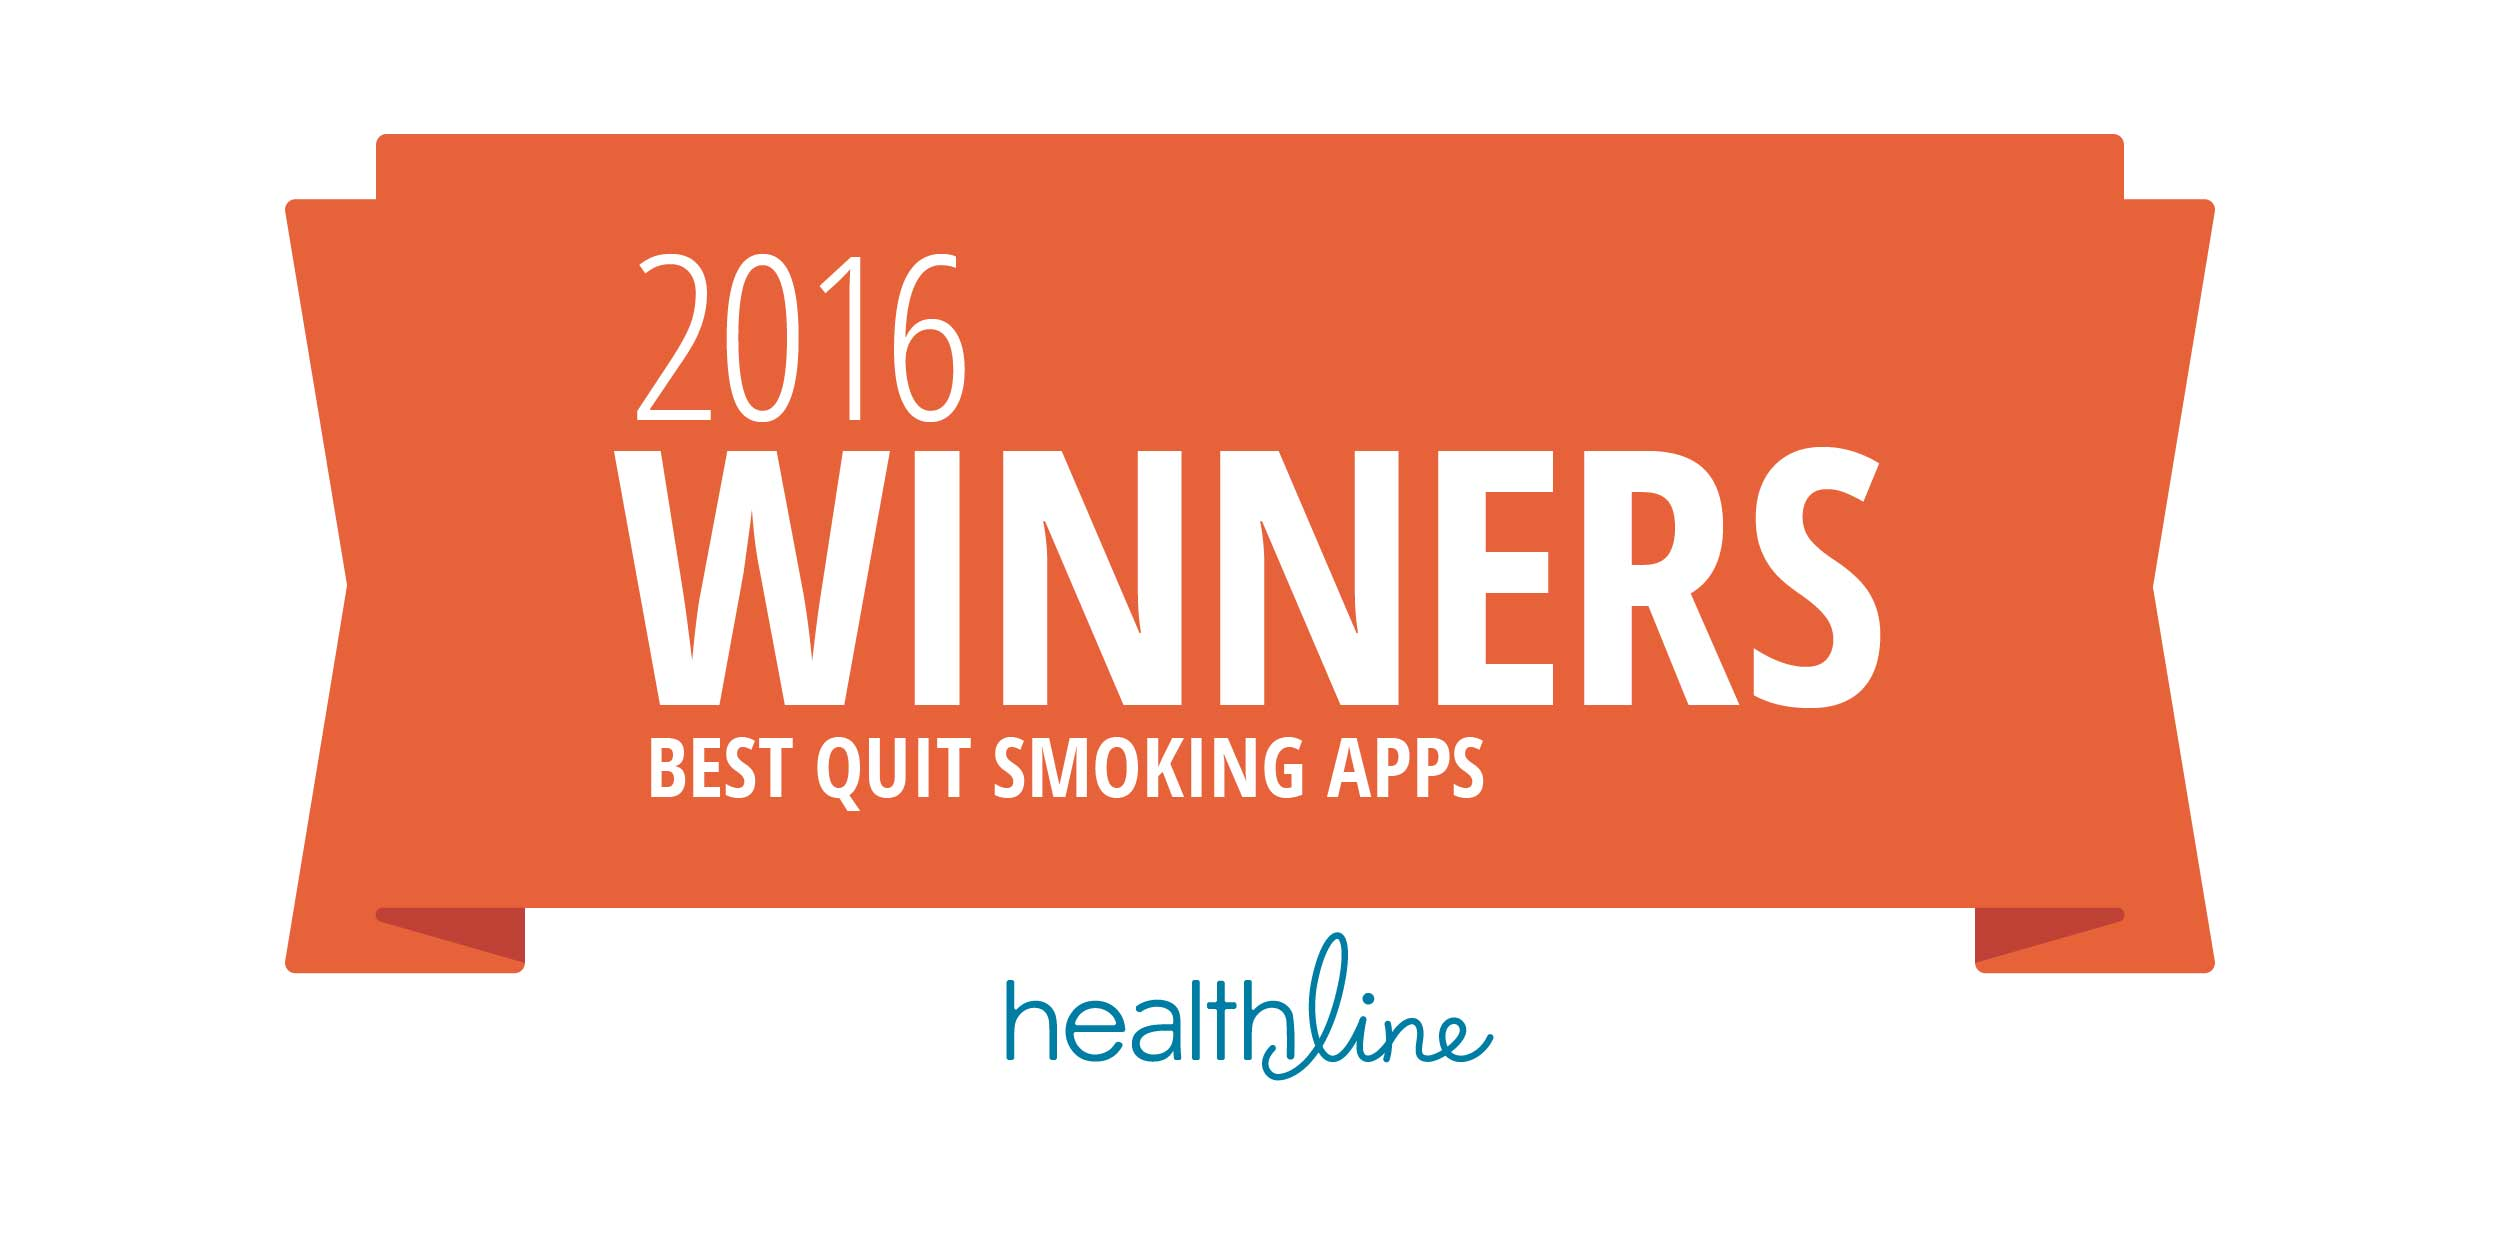 The Best Quit Smoking Apps of the Year